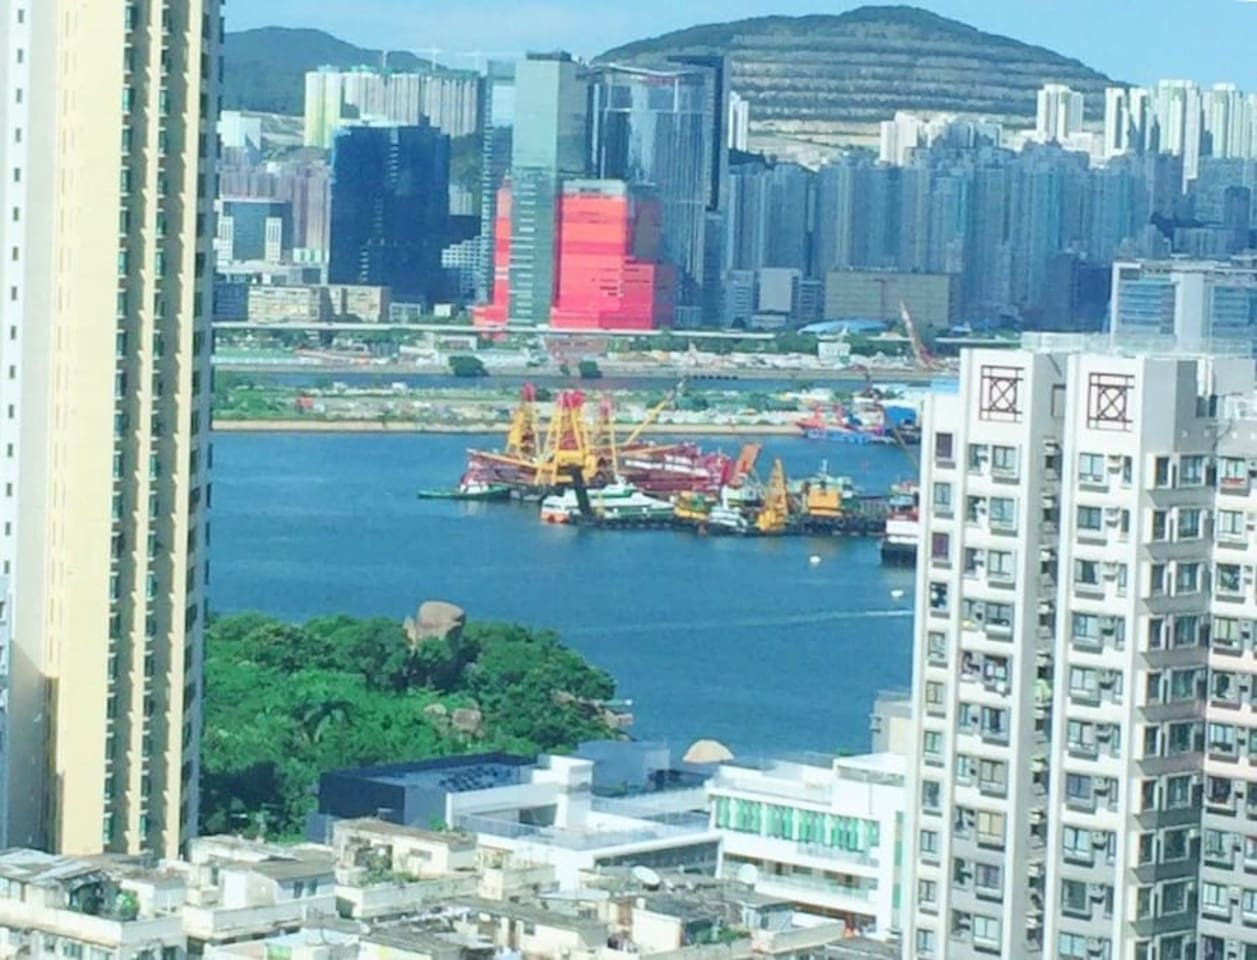 Seaview Apartment in Kowloon